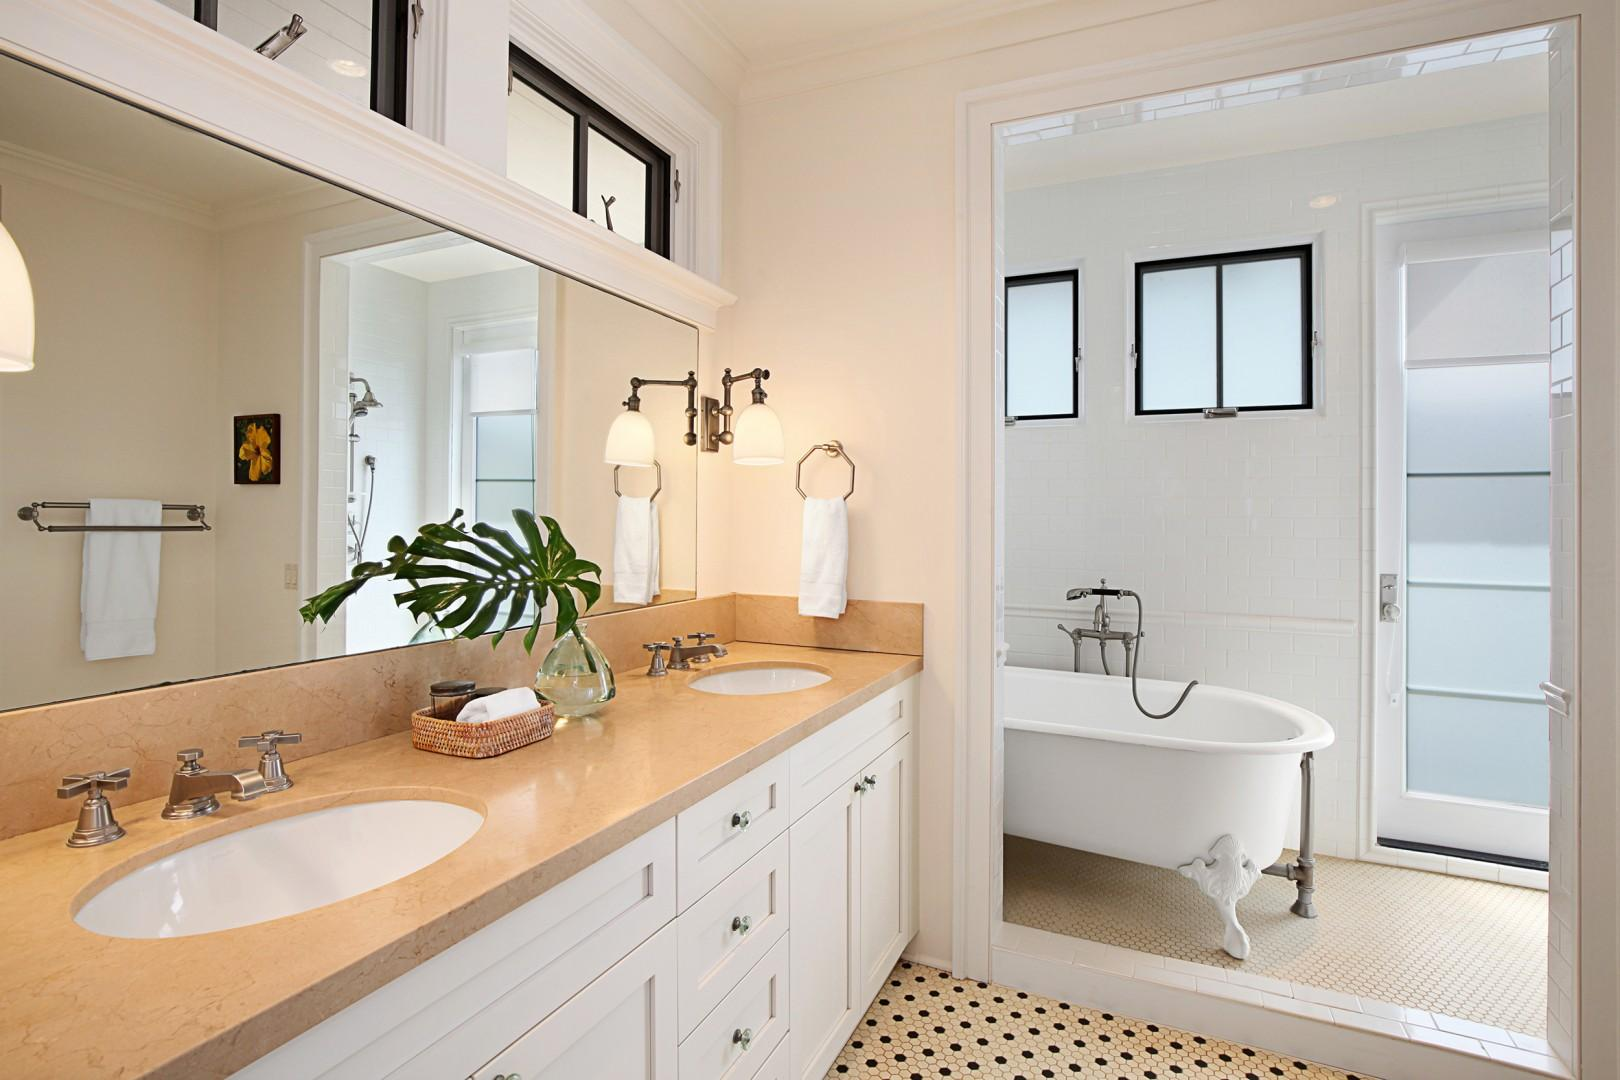 Master bathroom with clawfoot soaking tub and outdoor shower